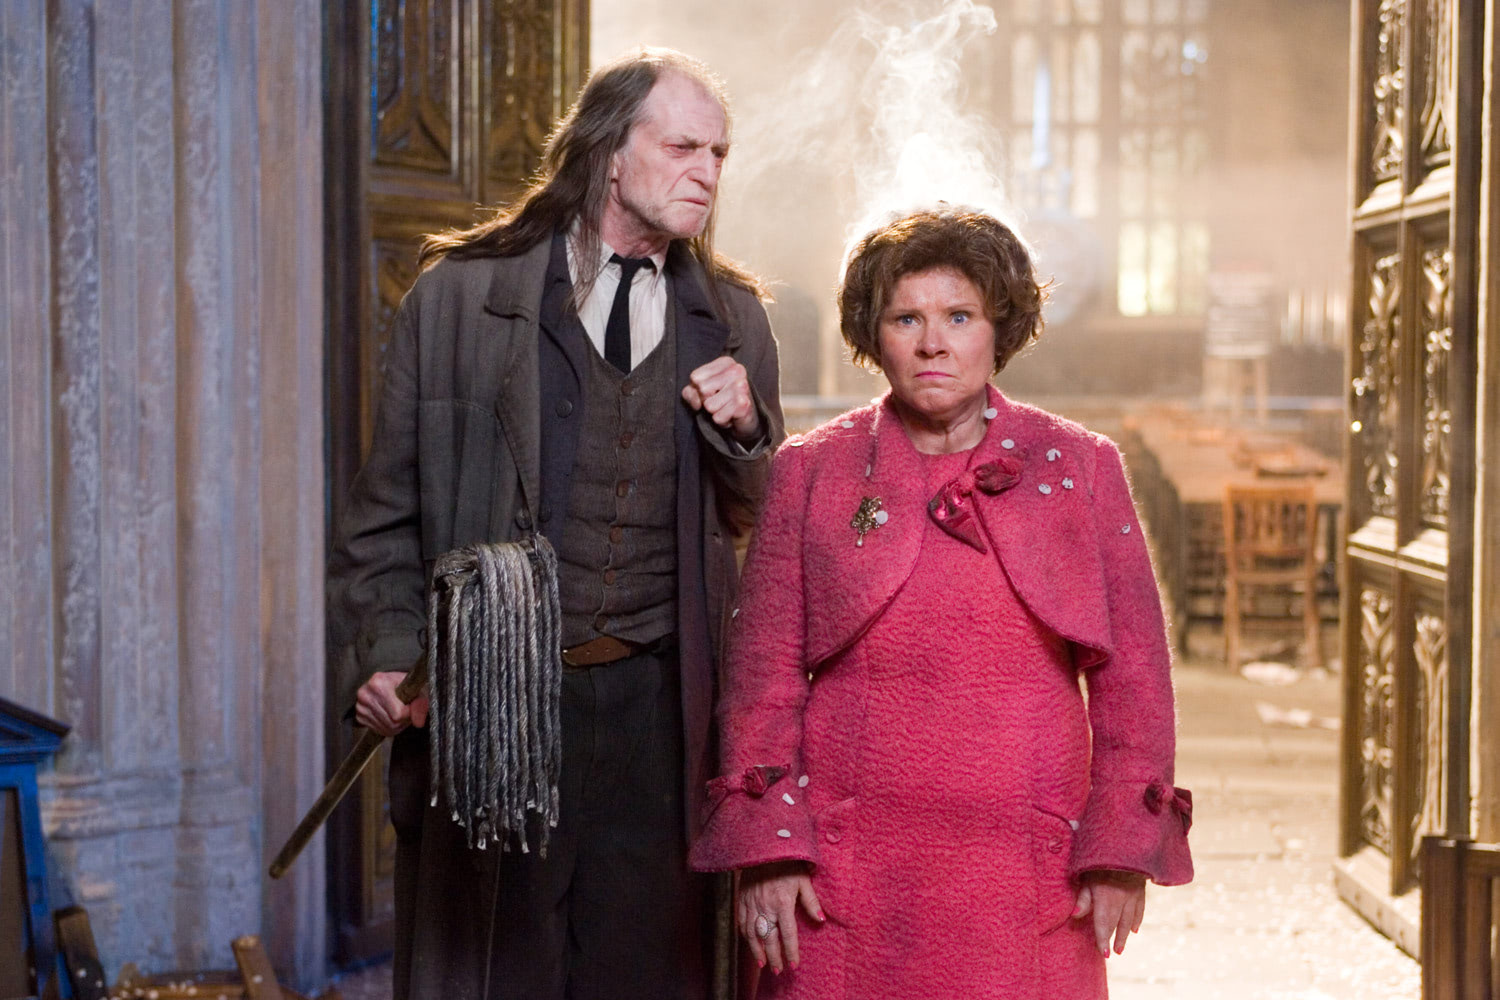 Filch and Umbridge